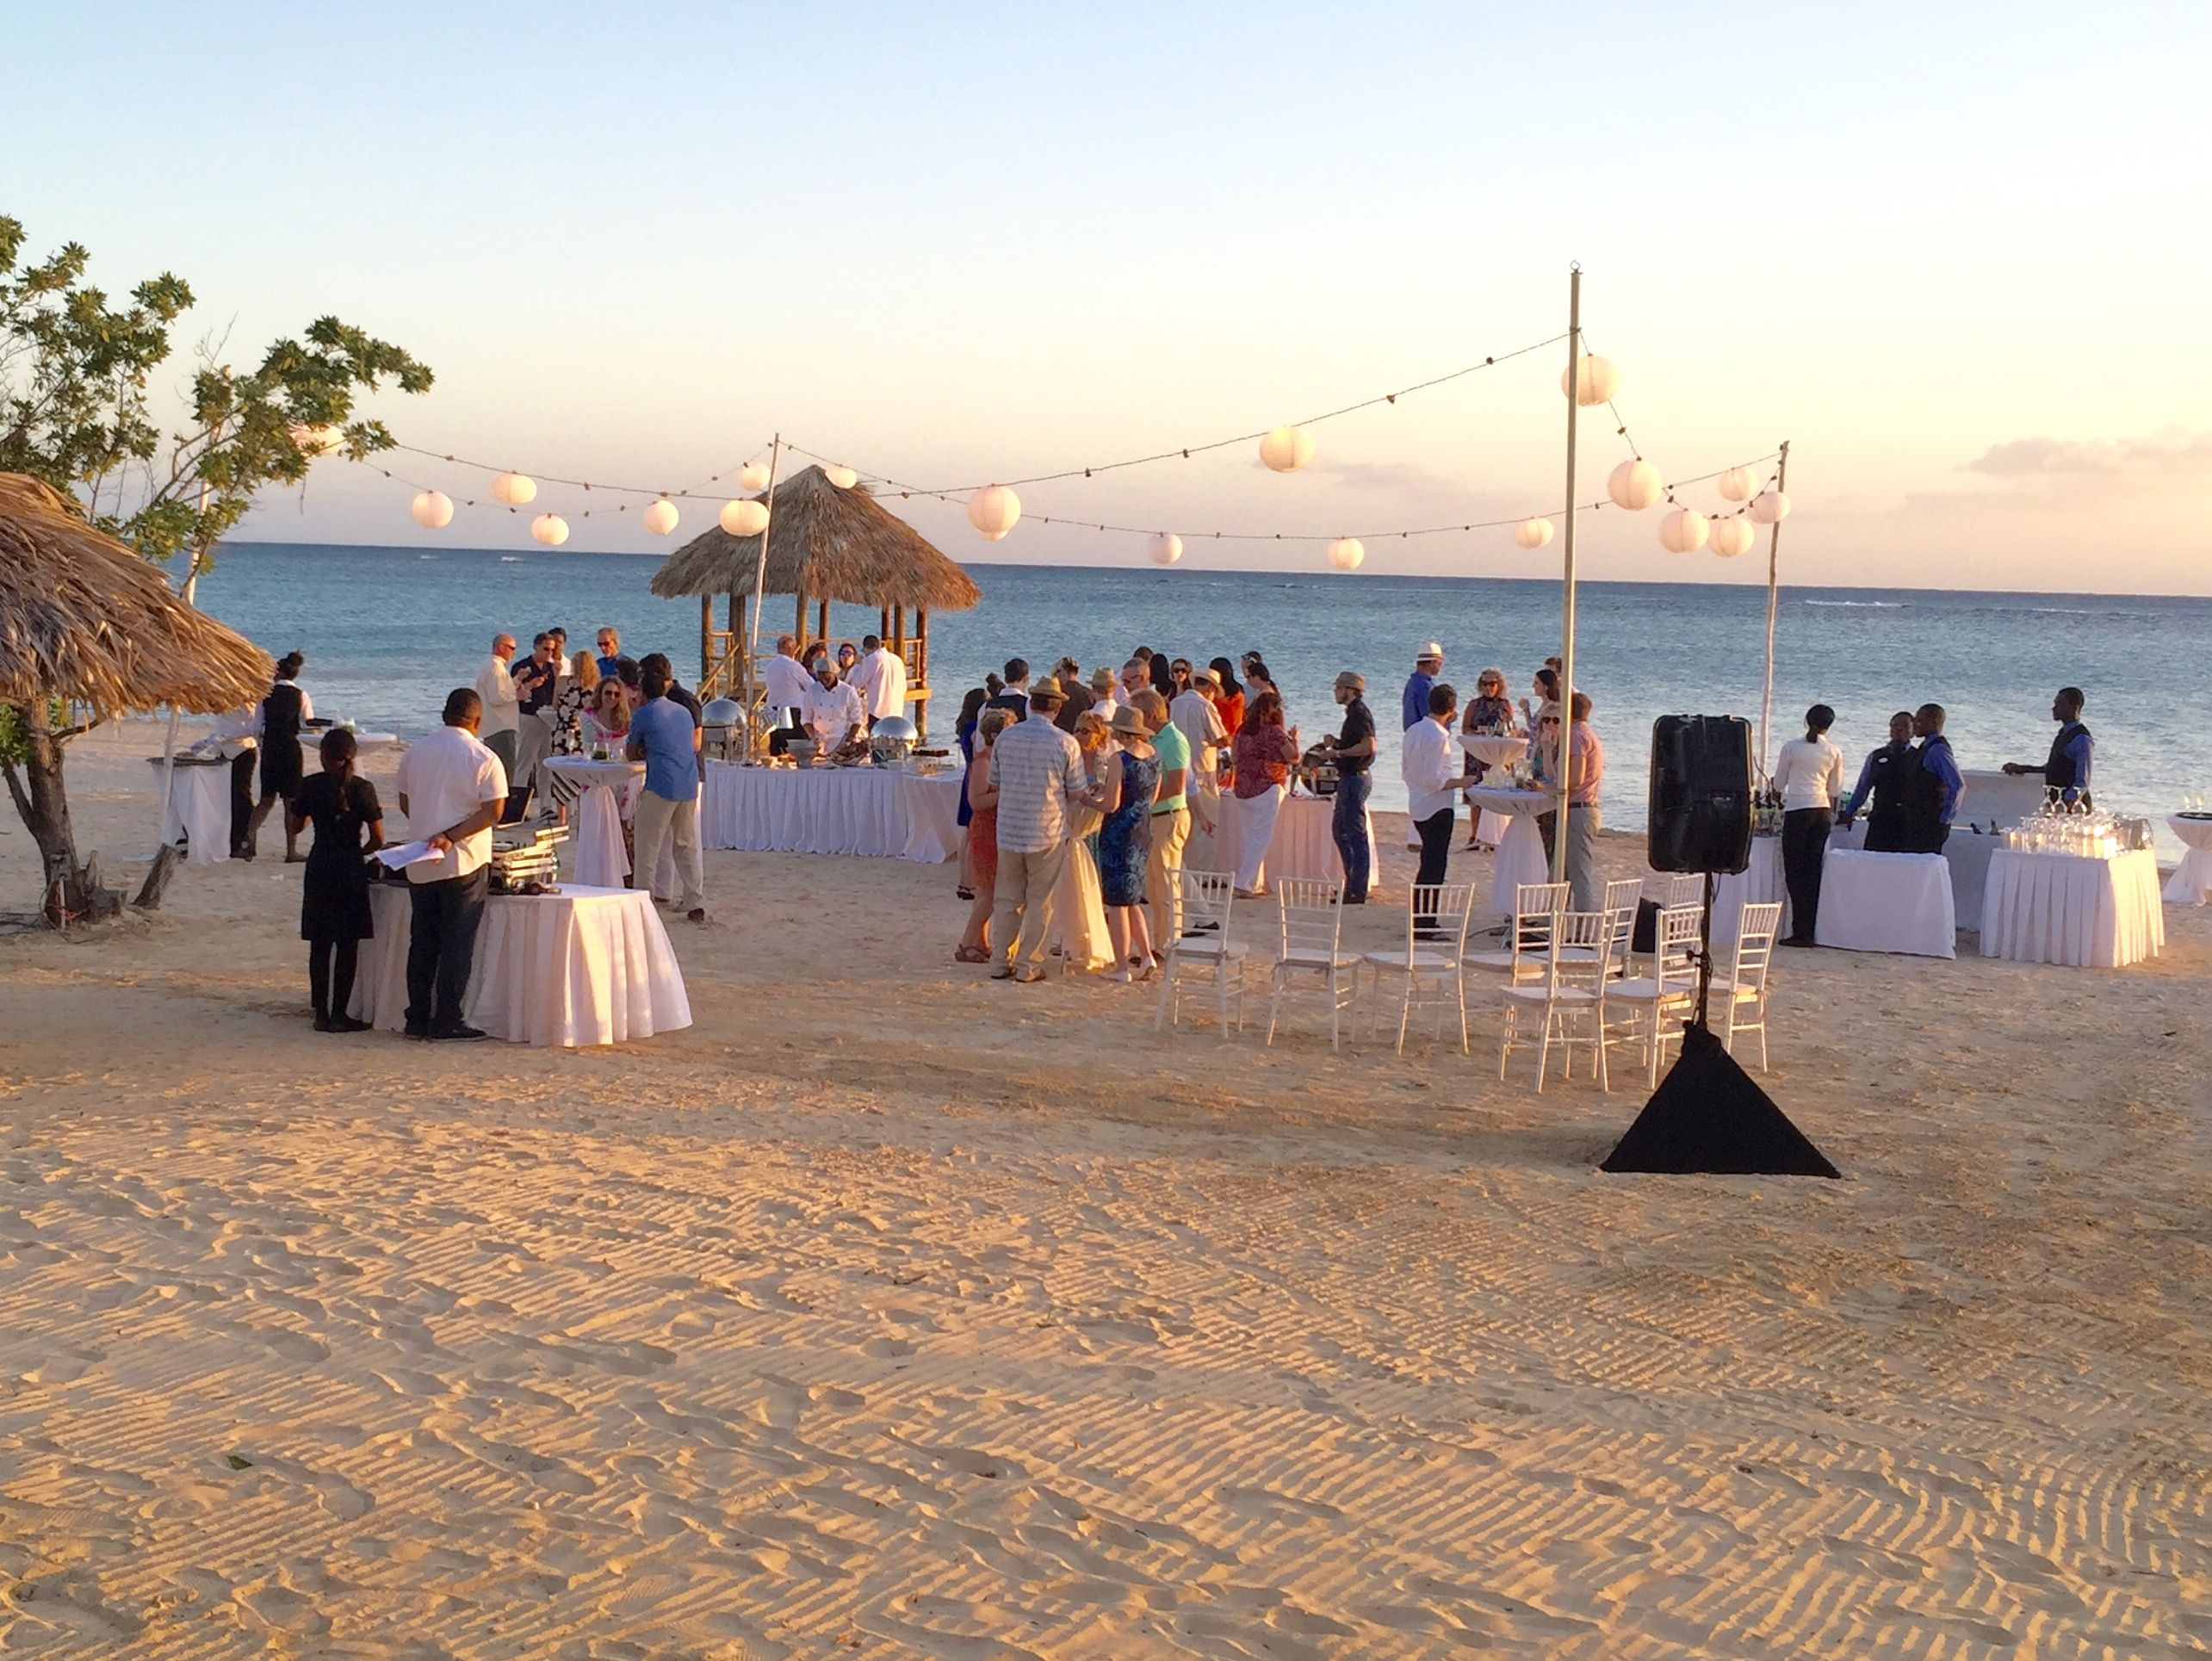 9612efee6 Reception on the beach at Sandals South Coast (formerly Sandals Whitehouse)  Let s start planning your destination wedding today 1-888-811-1888 ext 331